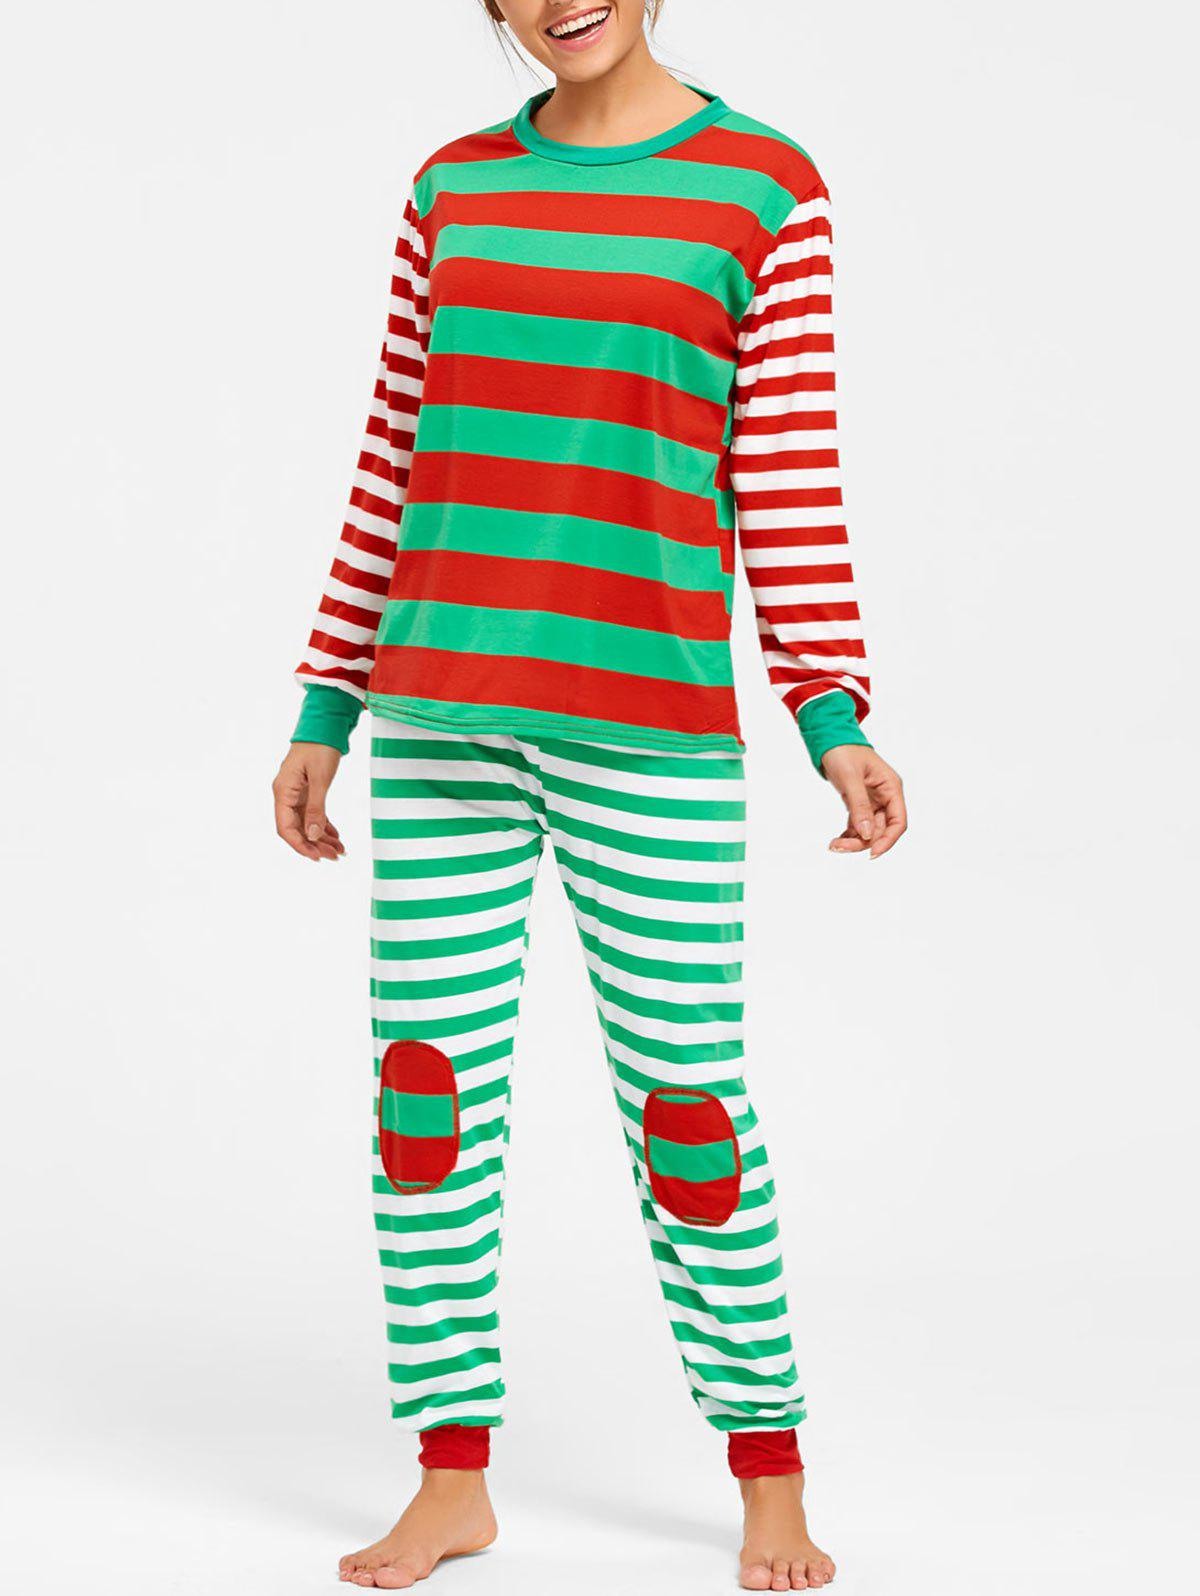 Striped Christmas Pajama SetWOMEN<br><br>Size: L; Color: COLORMIX; Material: Polyester; Pattern Type: Striped; Weight: 0.4800kg; Package Contents: 1 x Top  1 x Pants;